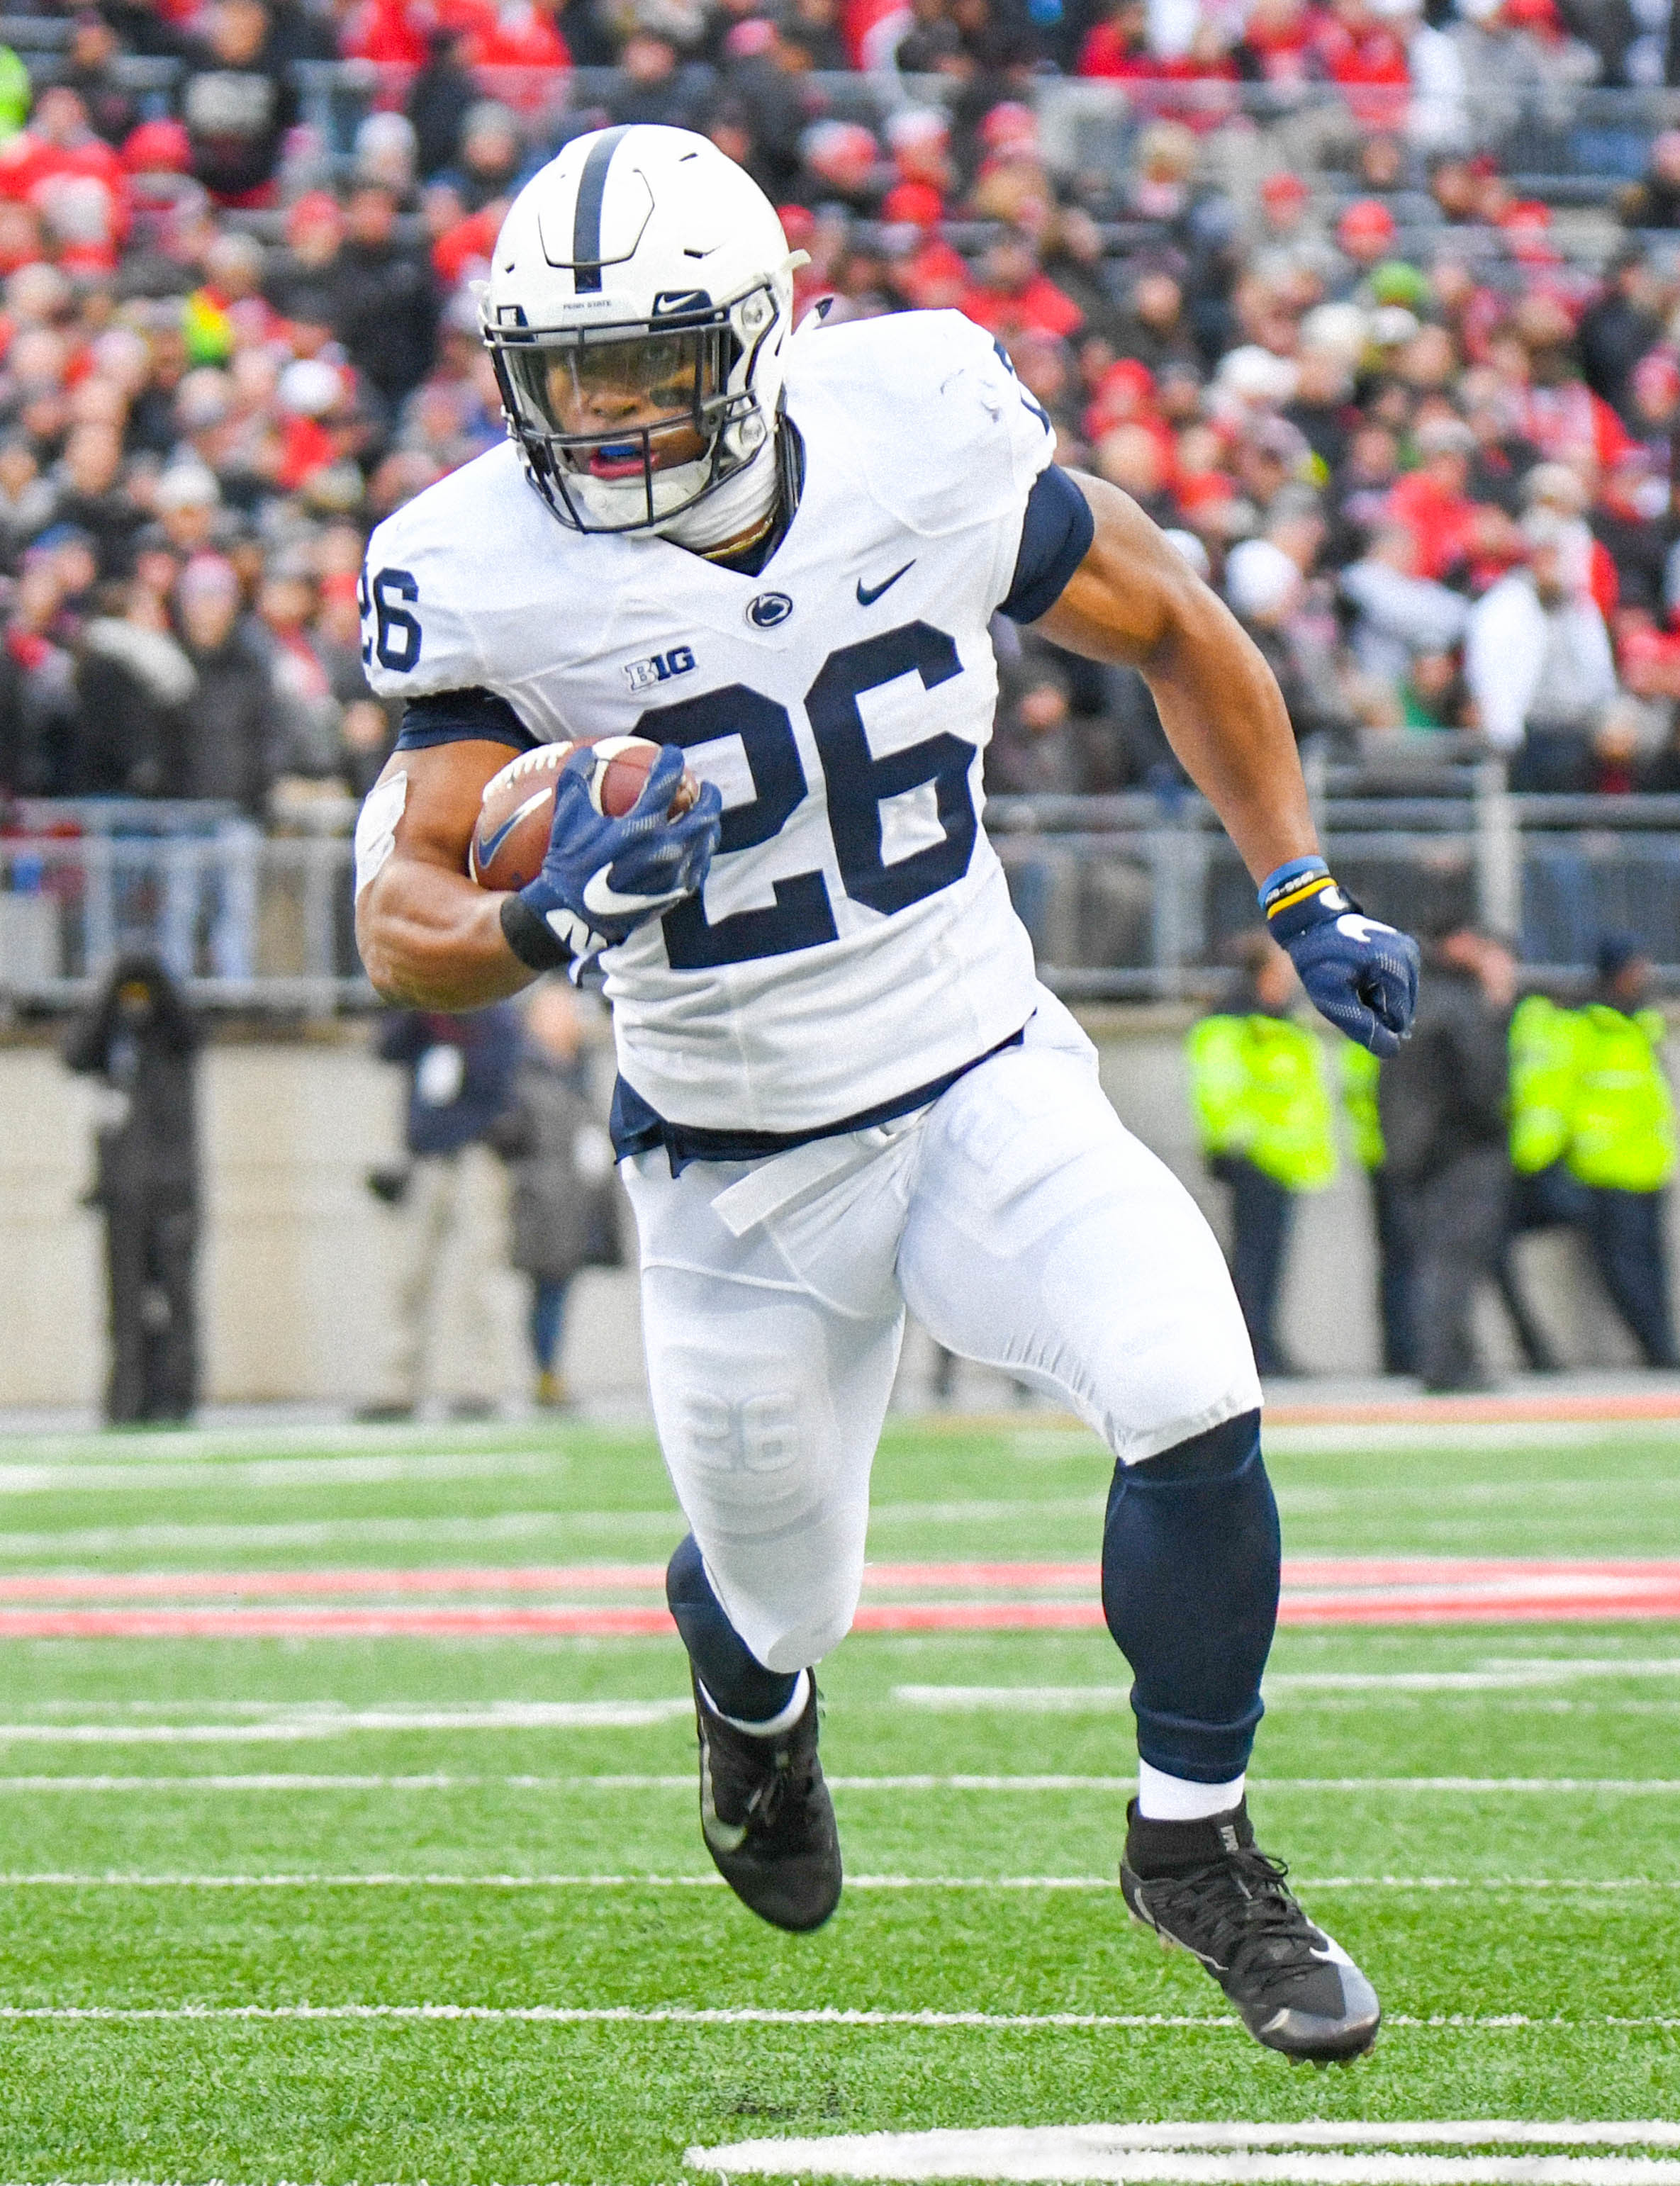 Barkley with Penn State in 2017. c8cdf8bad